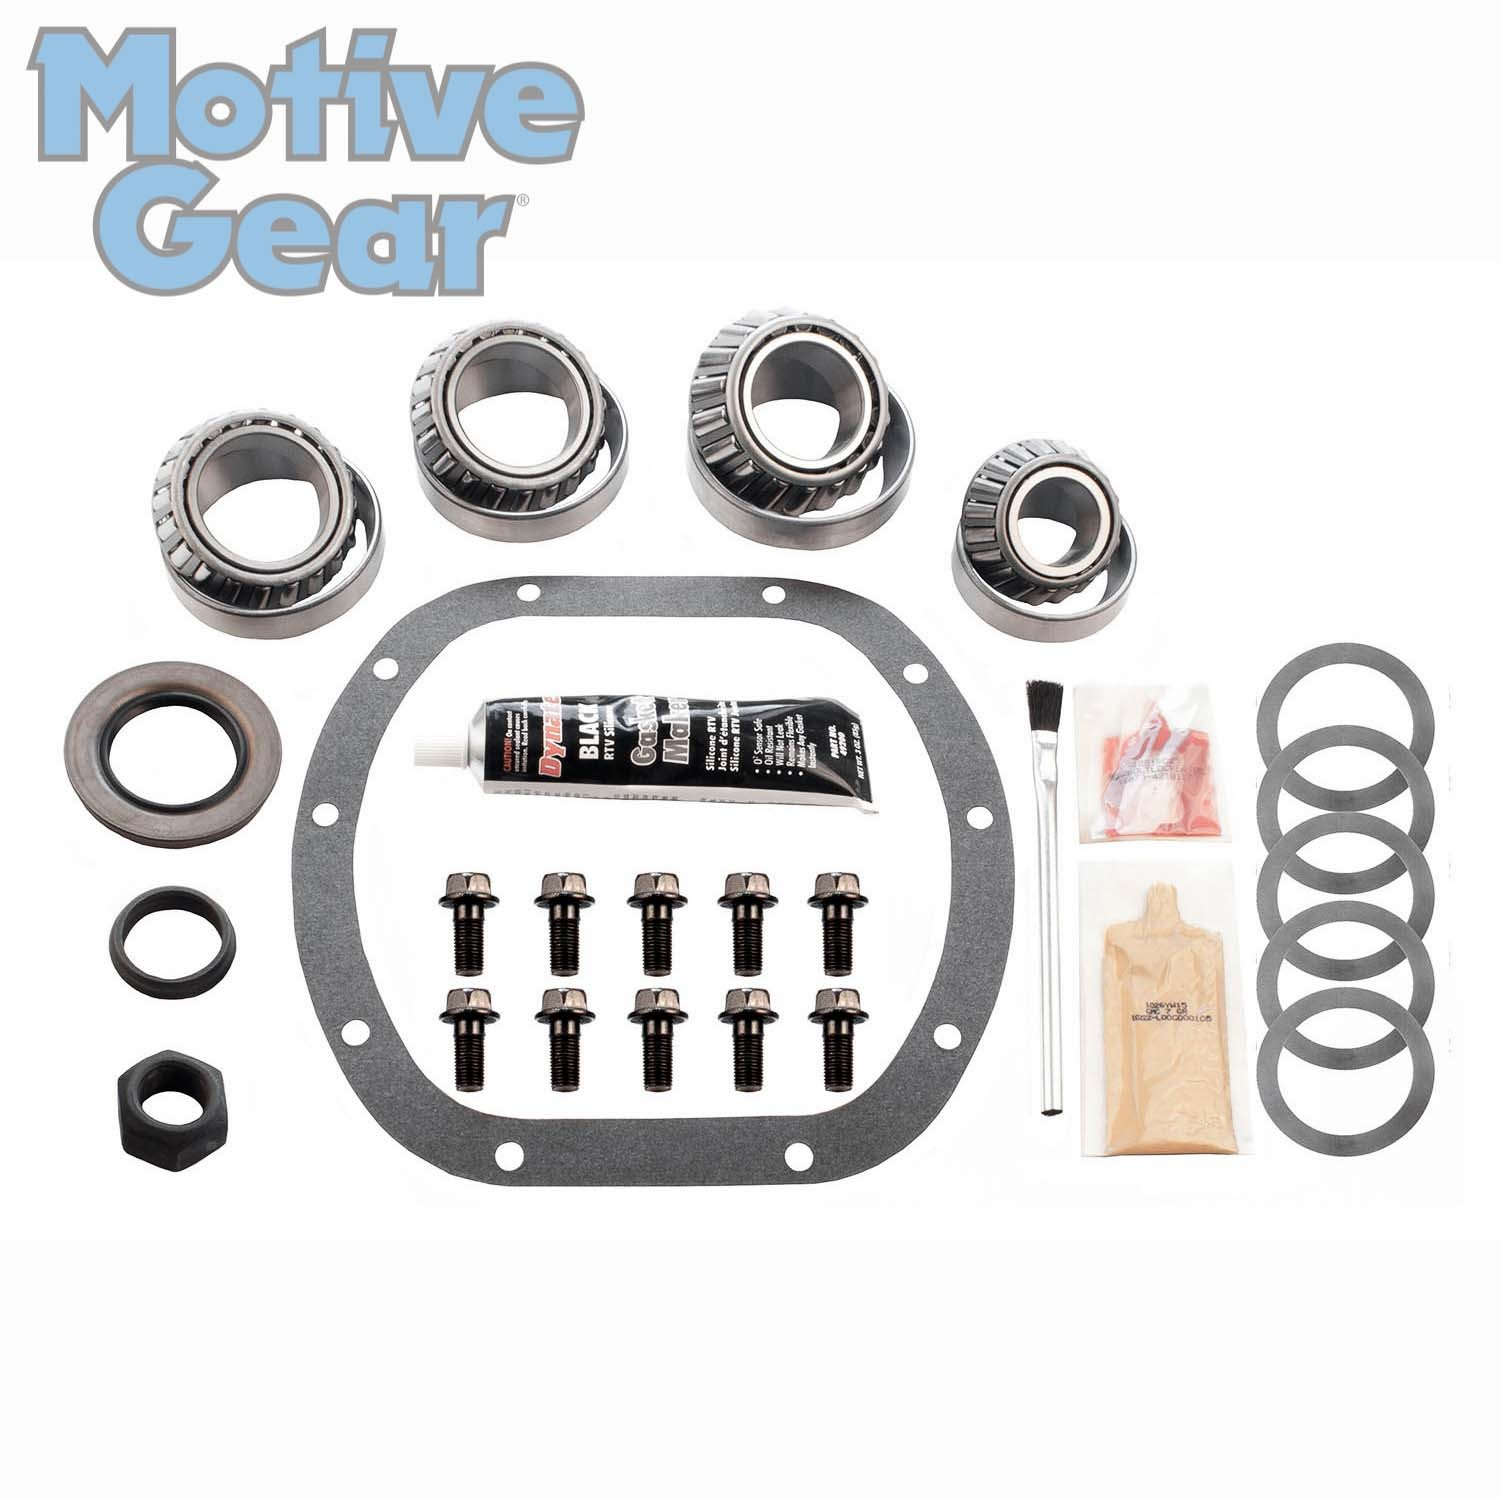 Motive Gear R8.25RMKT MOGR8.25RMKT CHRYSLER 8.25 MASTER BEARING KIT TIMKEN